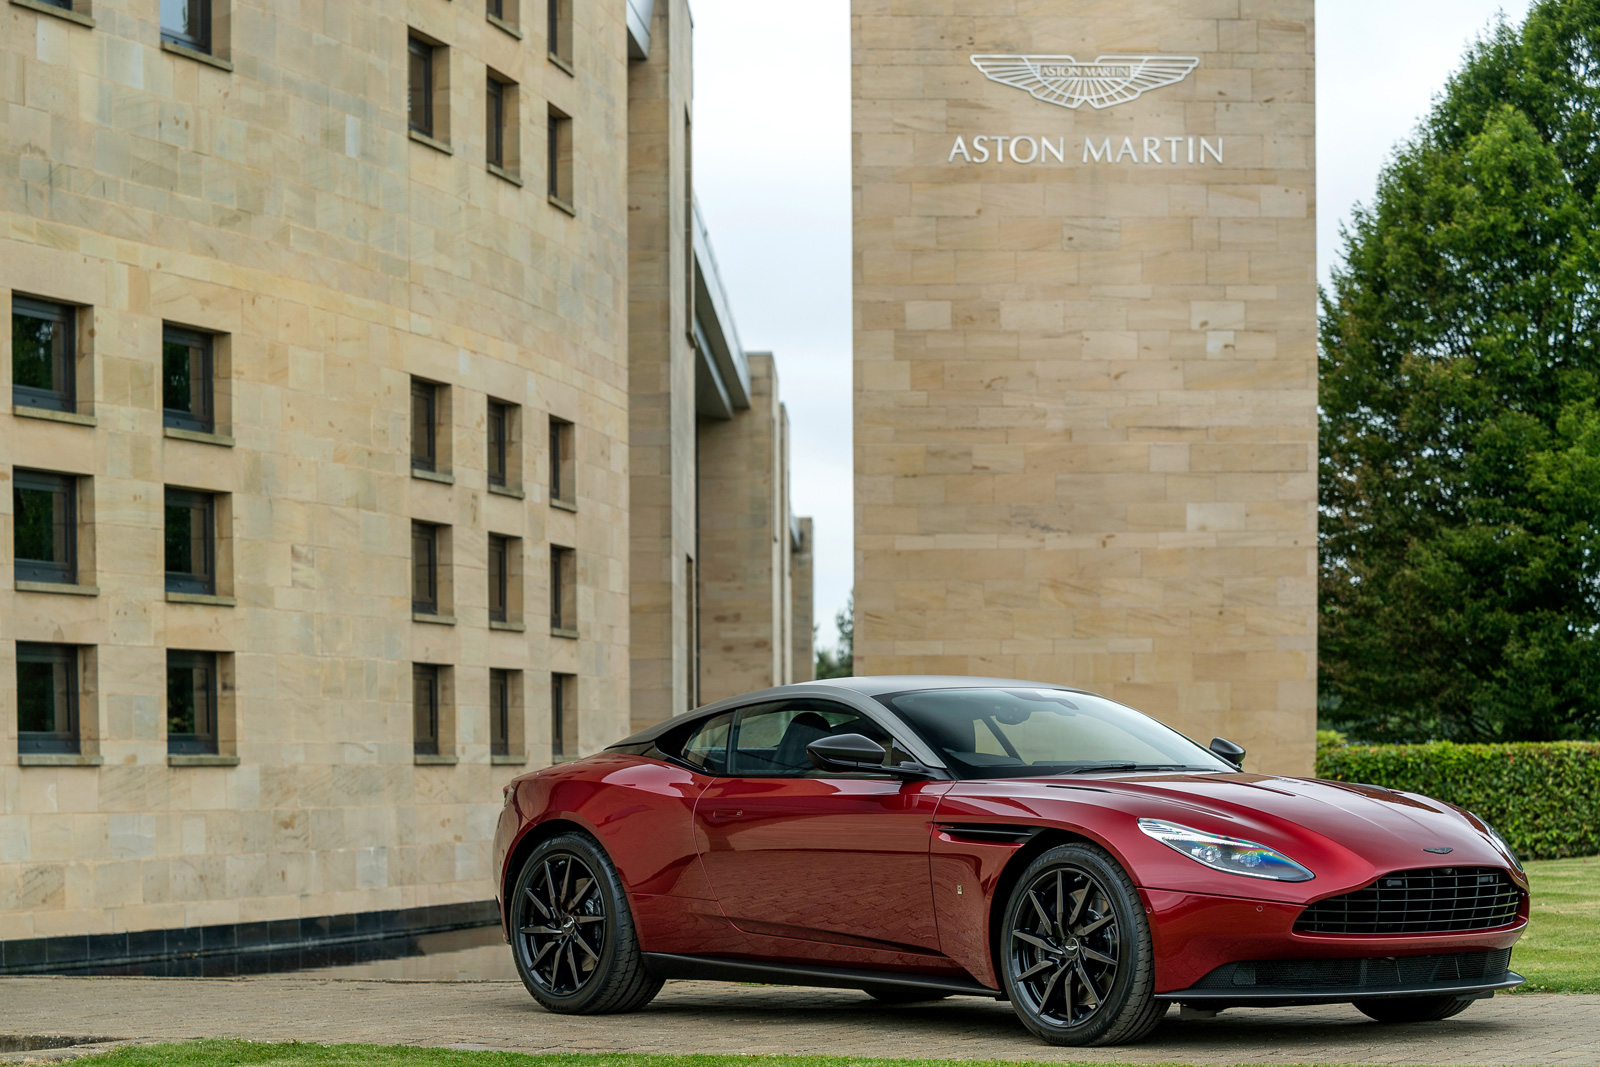 aston-martin-henley-royal-regatta-db11-01